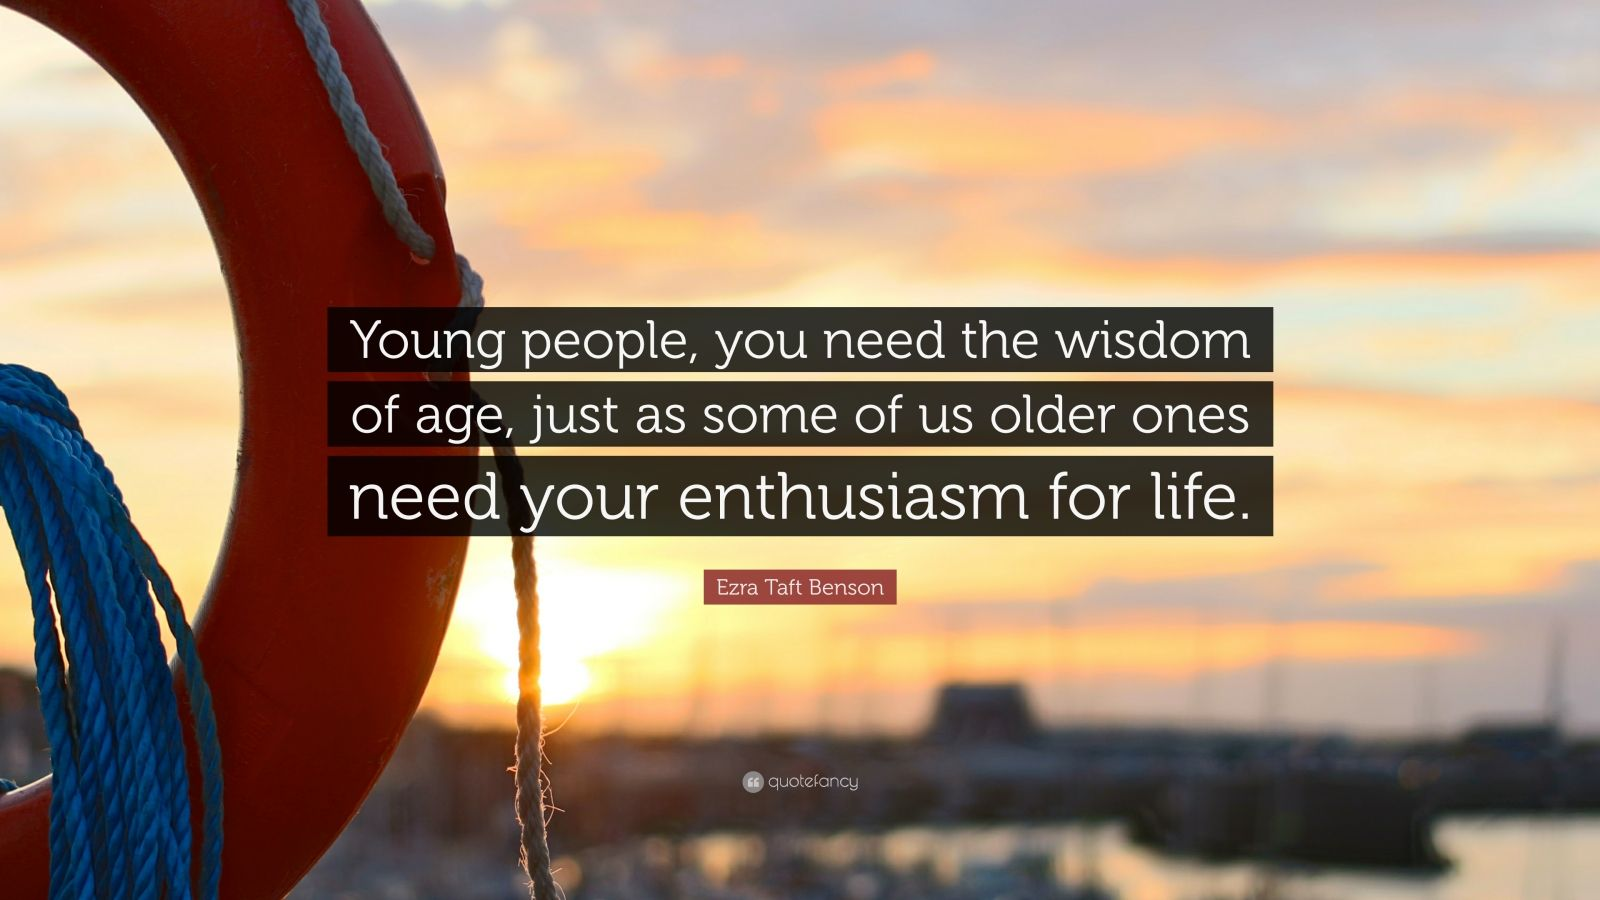 """Ezra Taft Benson Quote: """"Young people, you need the wisdom of age, just as some of us older ones need your enthusiasm for life."""""""